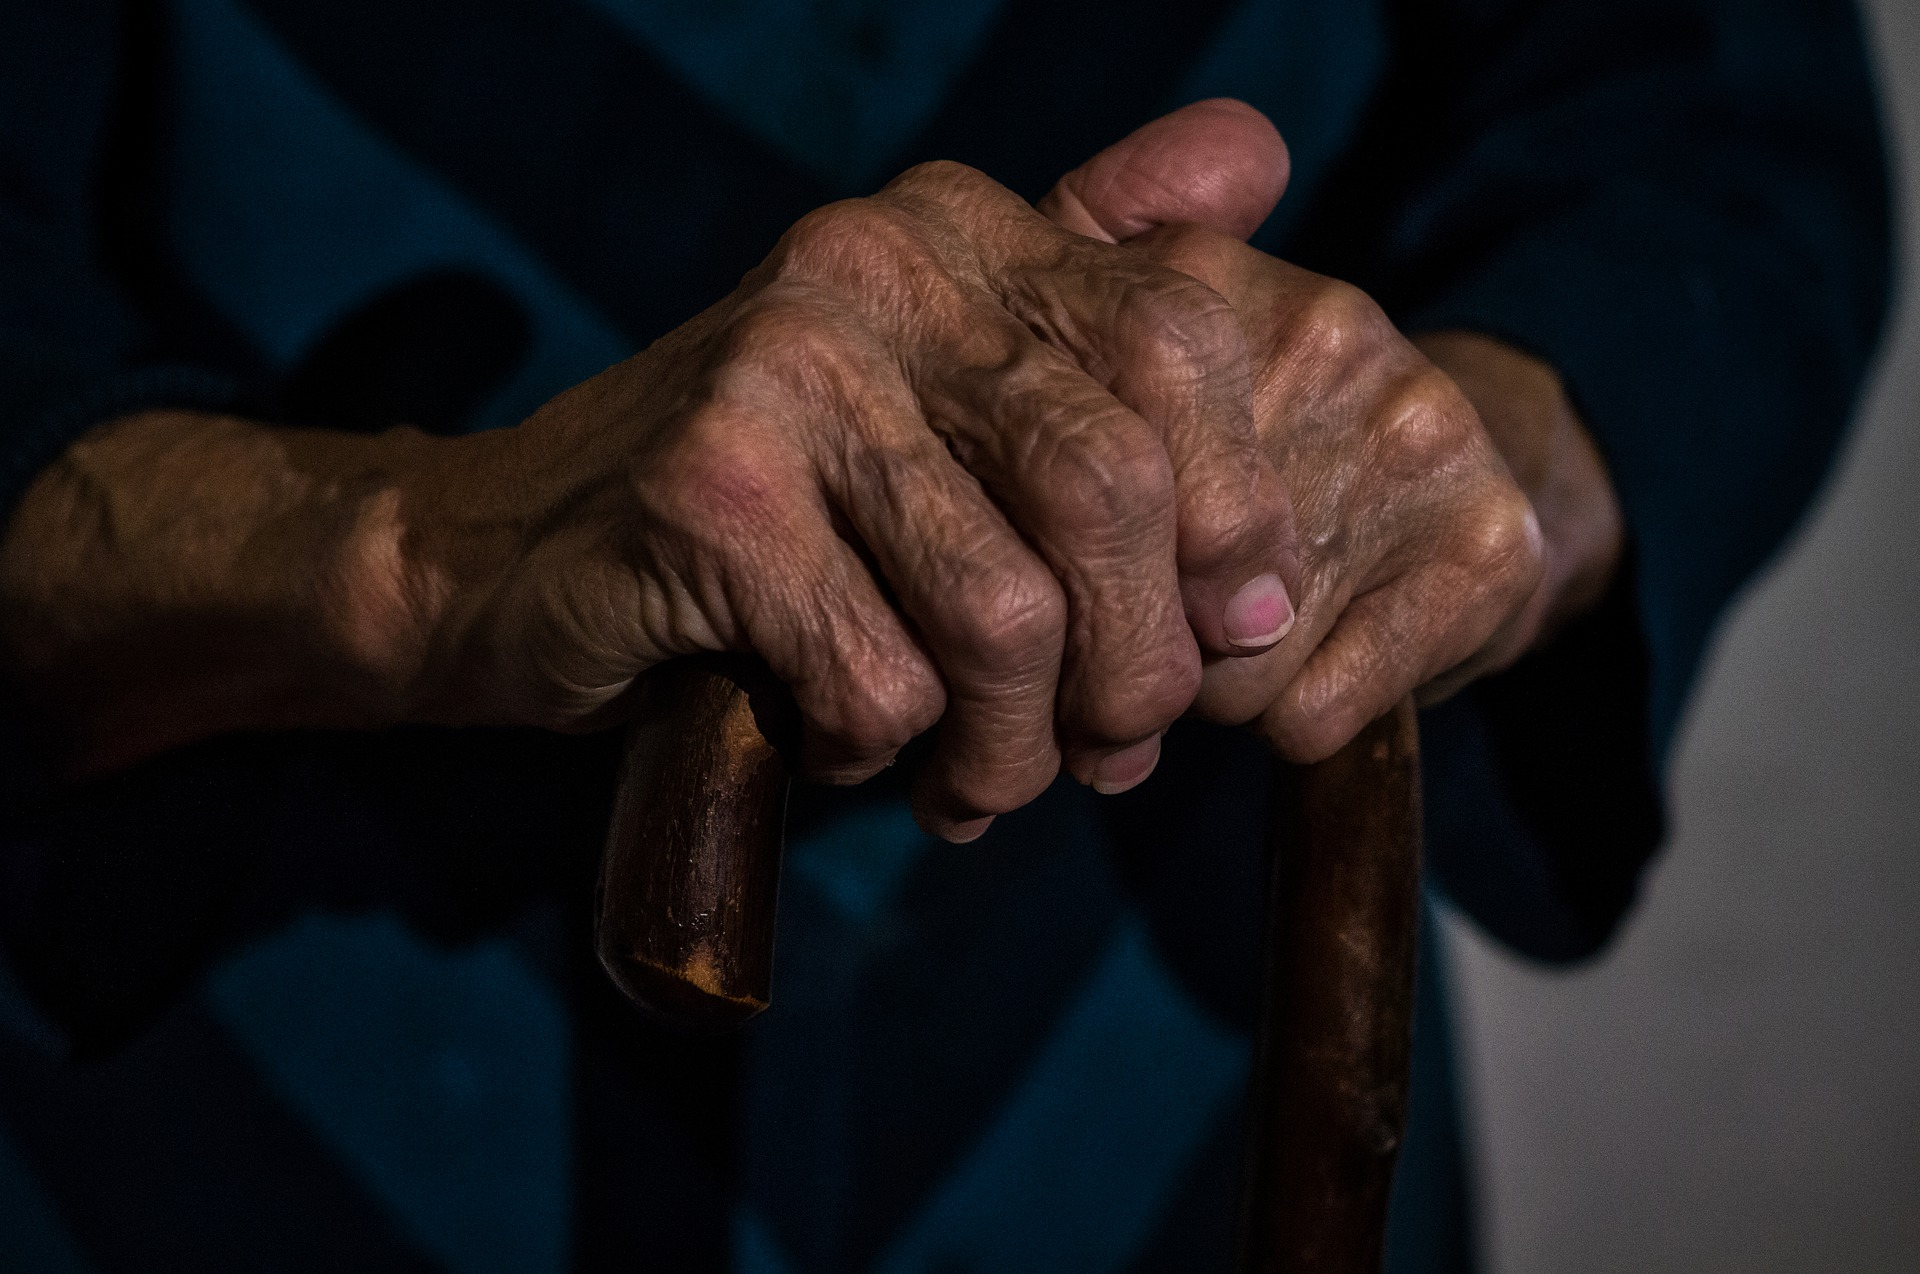 sexual-abuse-in-later-life-jacksonville-florida